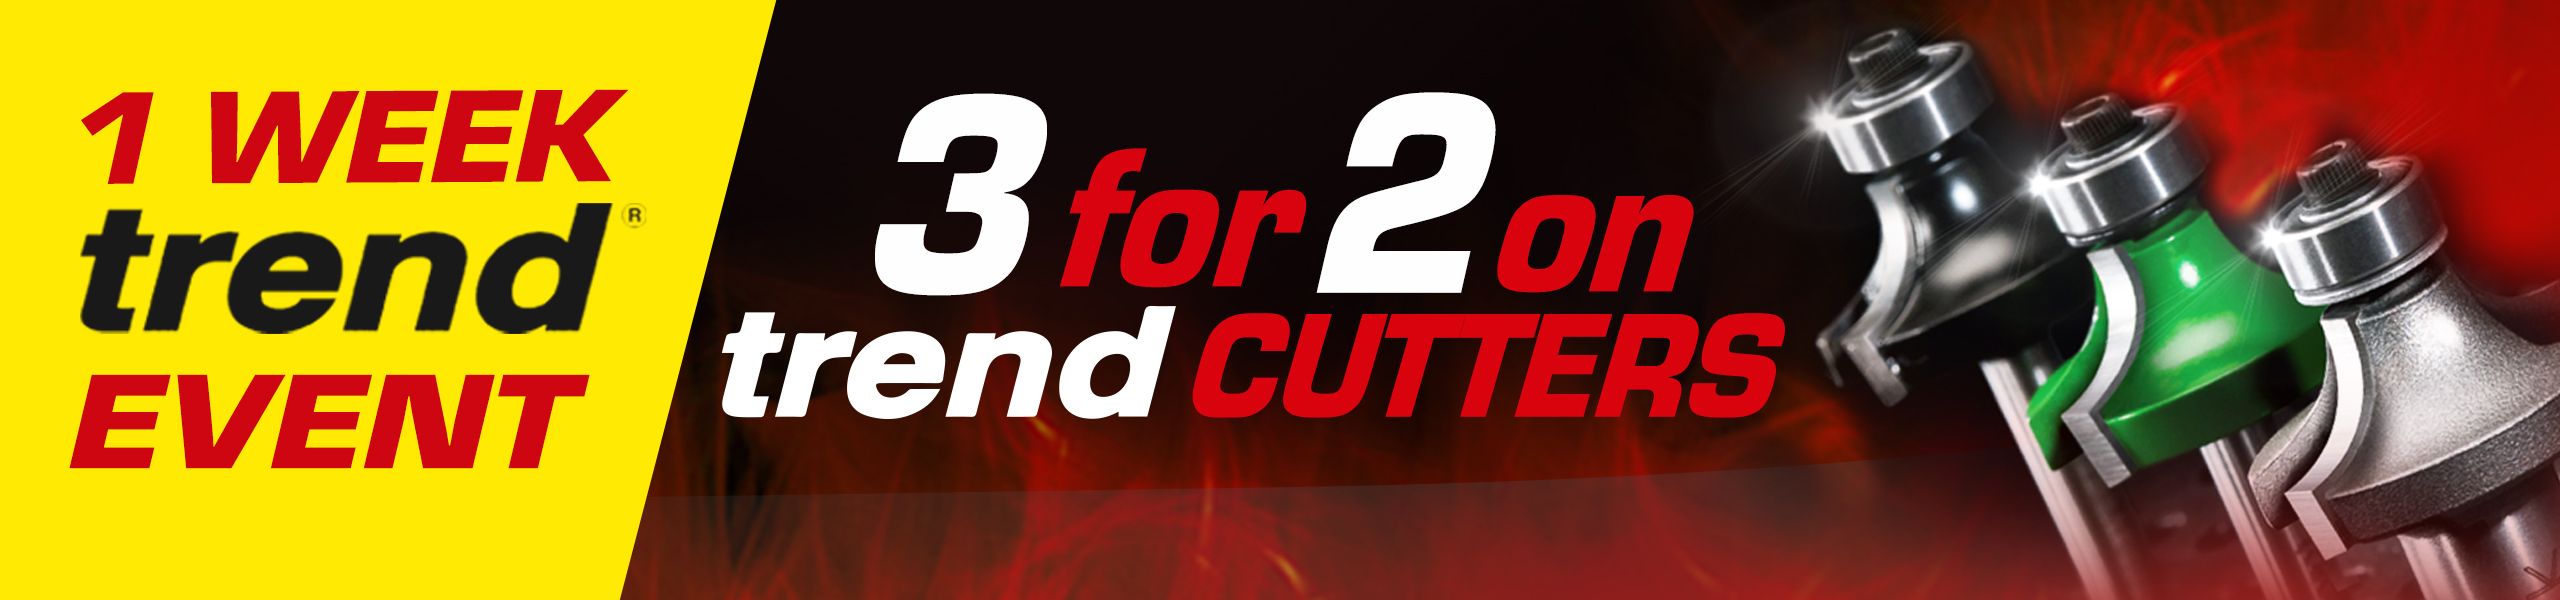 Trend 3 for 2 Router Cutters